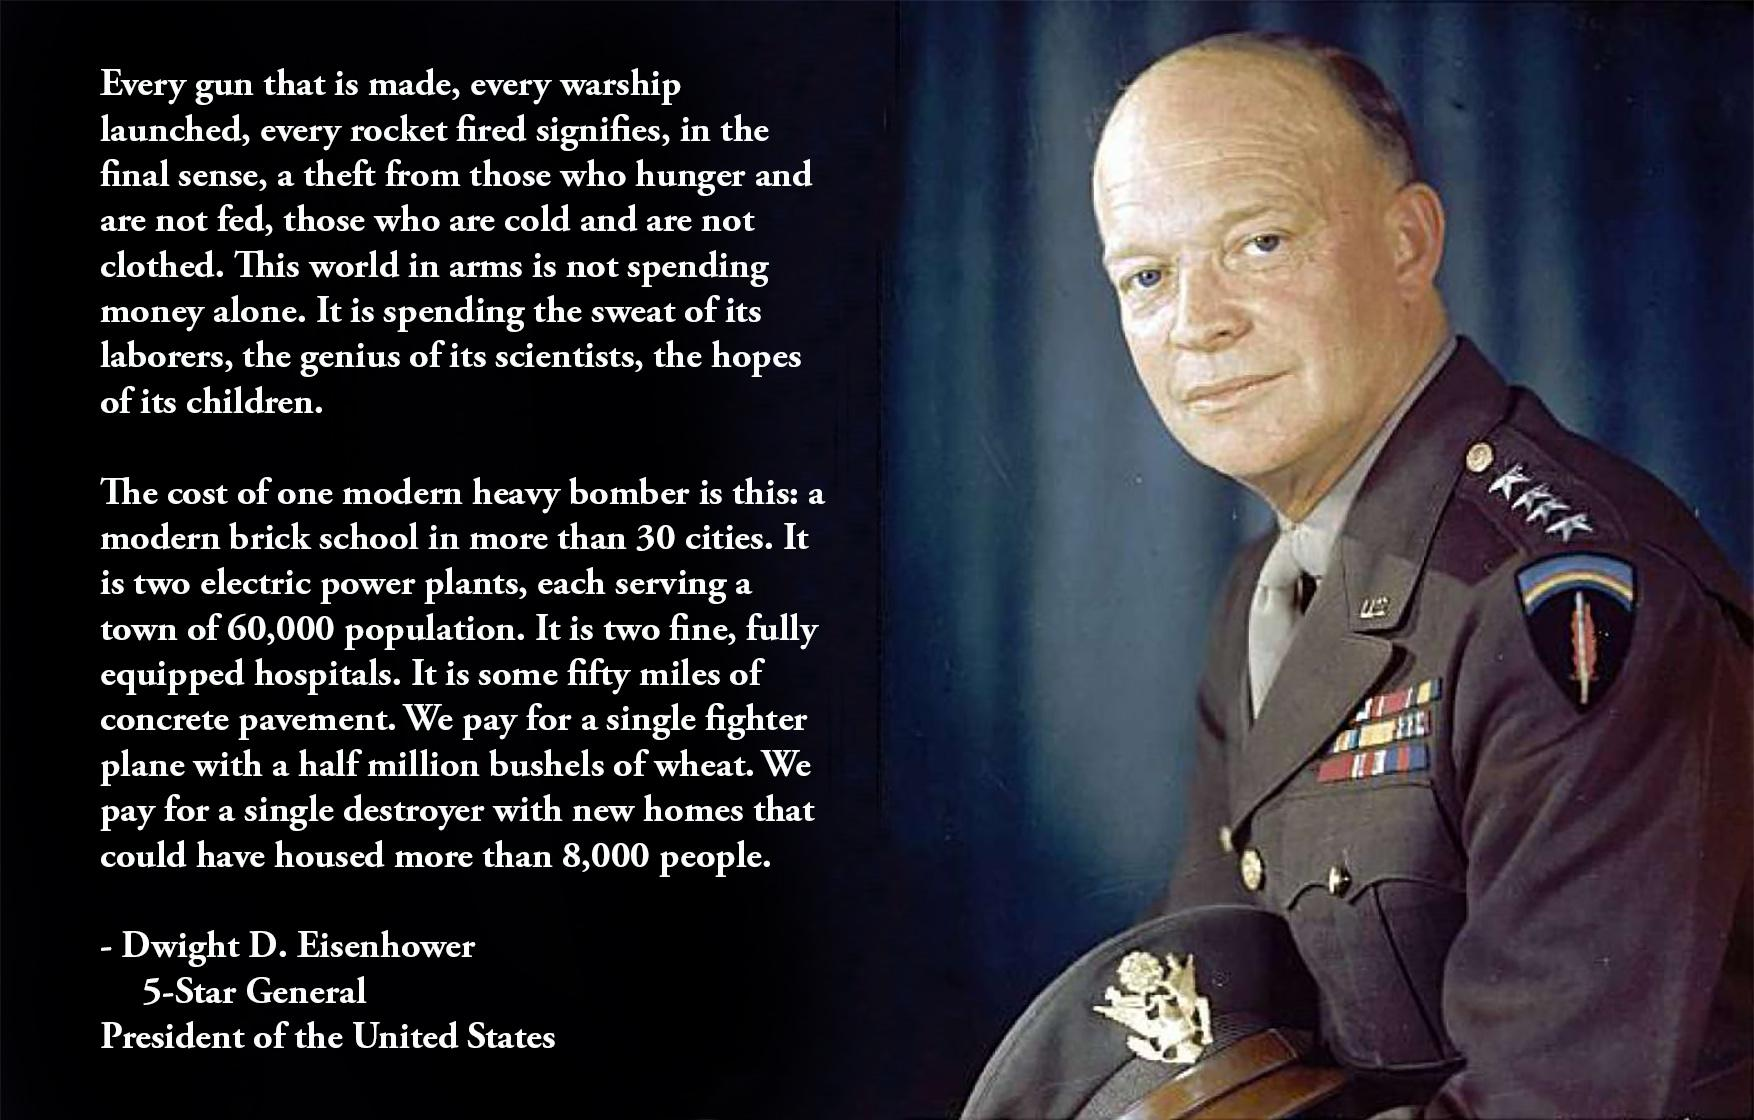 """Every gun that is made, every warship launched, every rocket fired signifies, in the final sense, a theft from those who hunger and are not fed, those who are cold and are not clothed."" – Dwight D. Eisenhower, 5-Star General & President [1754 × 1120] [OC]"